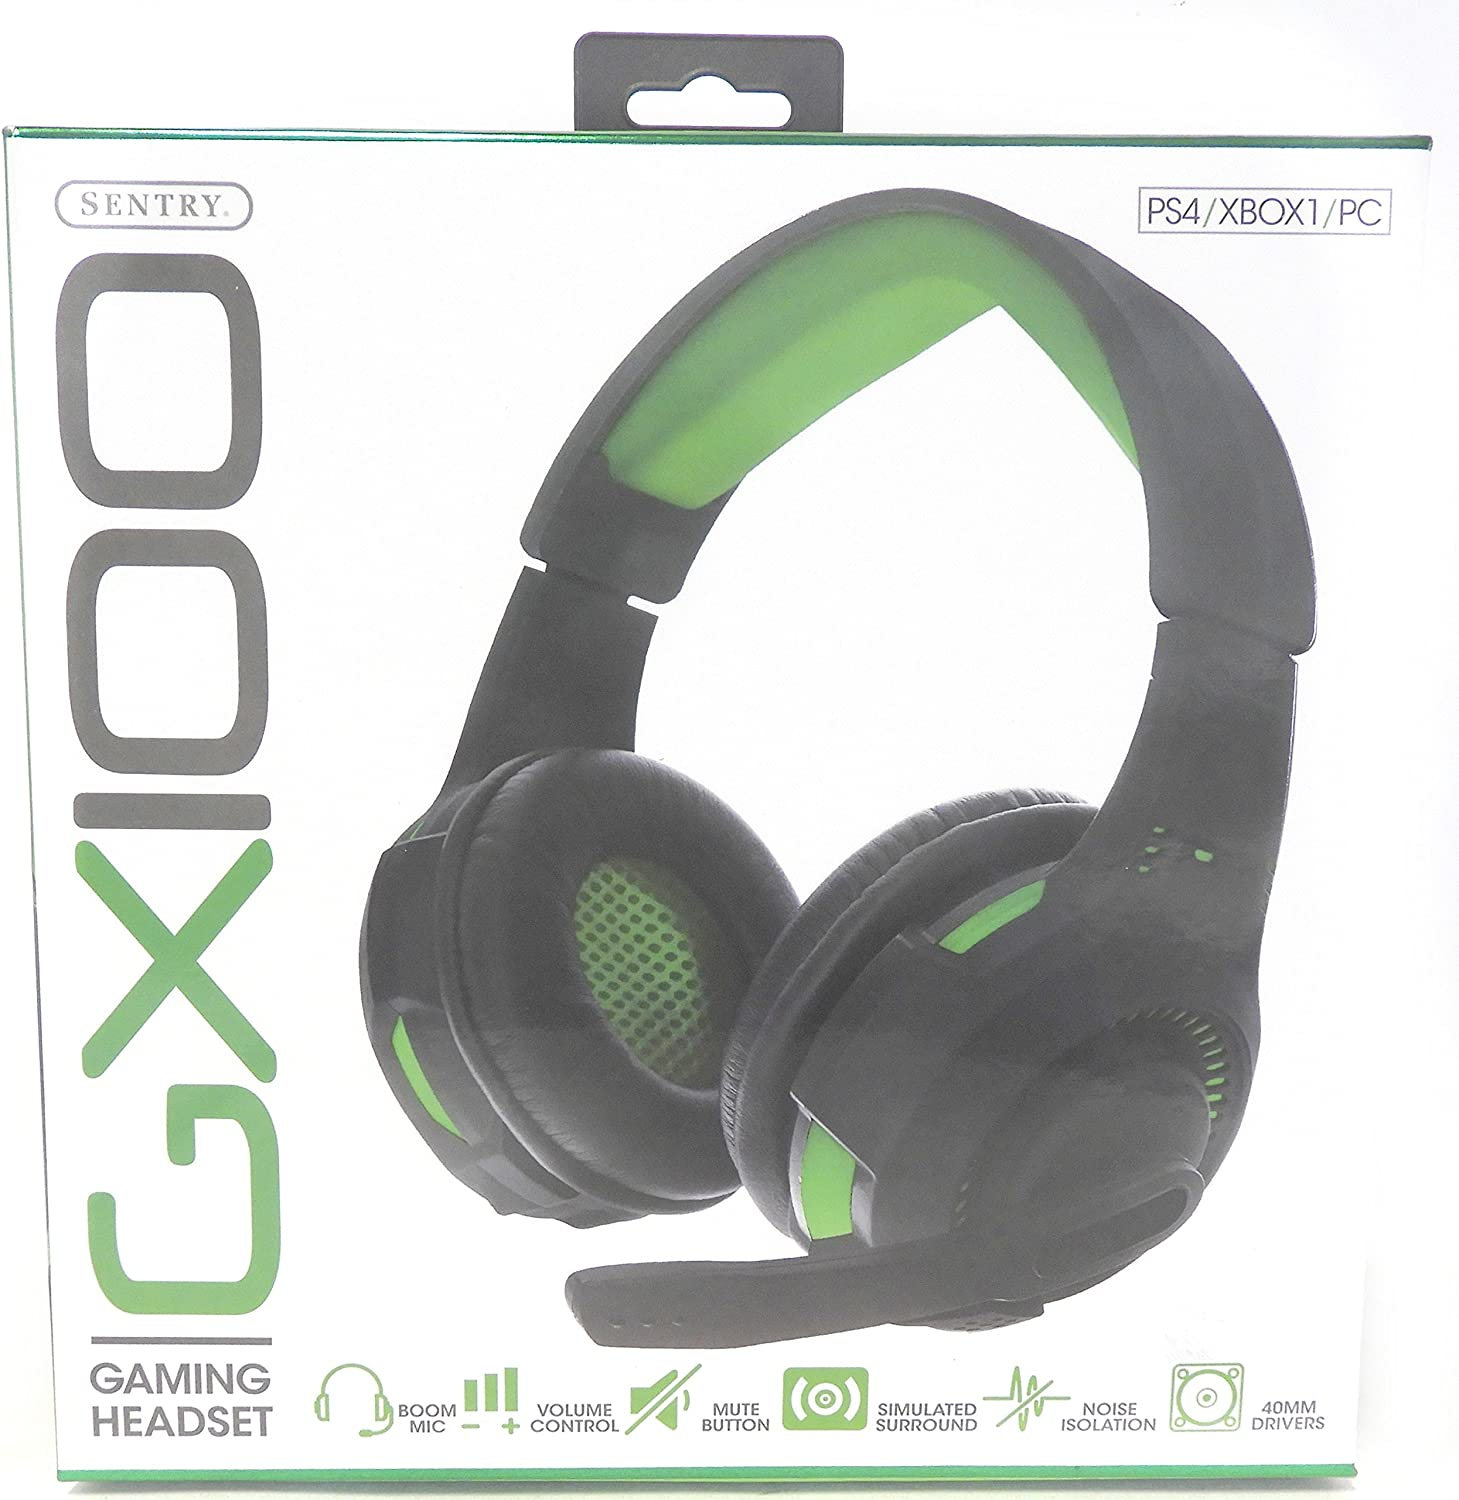 GX100 Gaming Headset PS4 XBOX1 PC 40mm Drivers Noise Isolation Simulated Surround Boom Mic (GreenBlack)